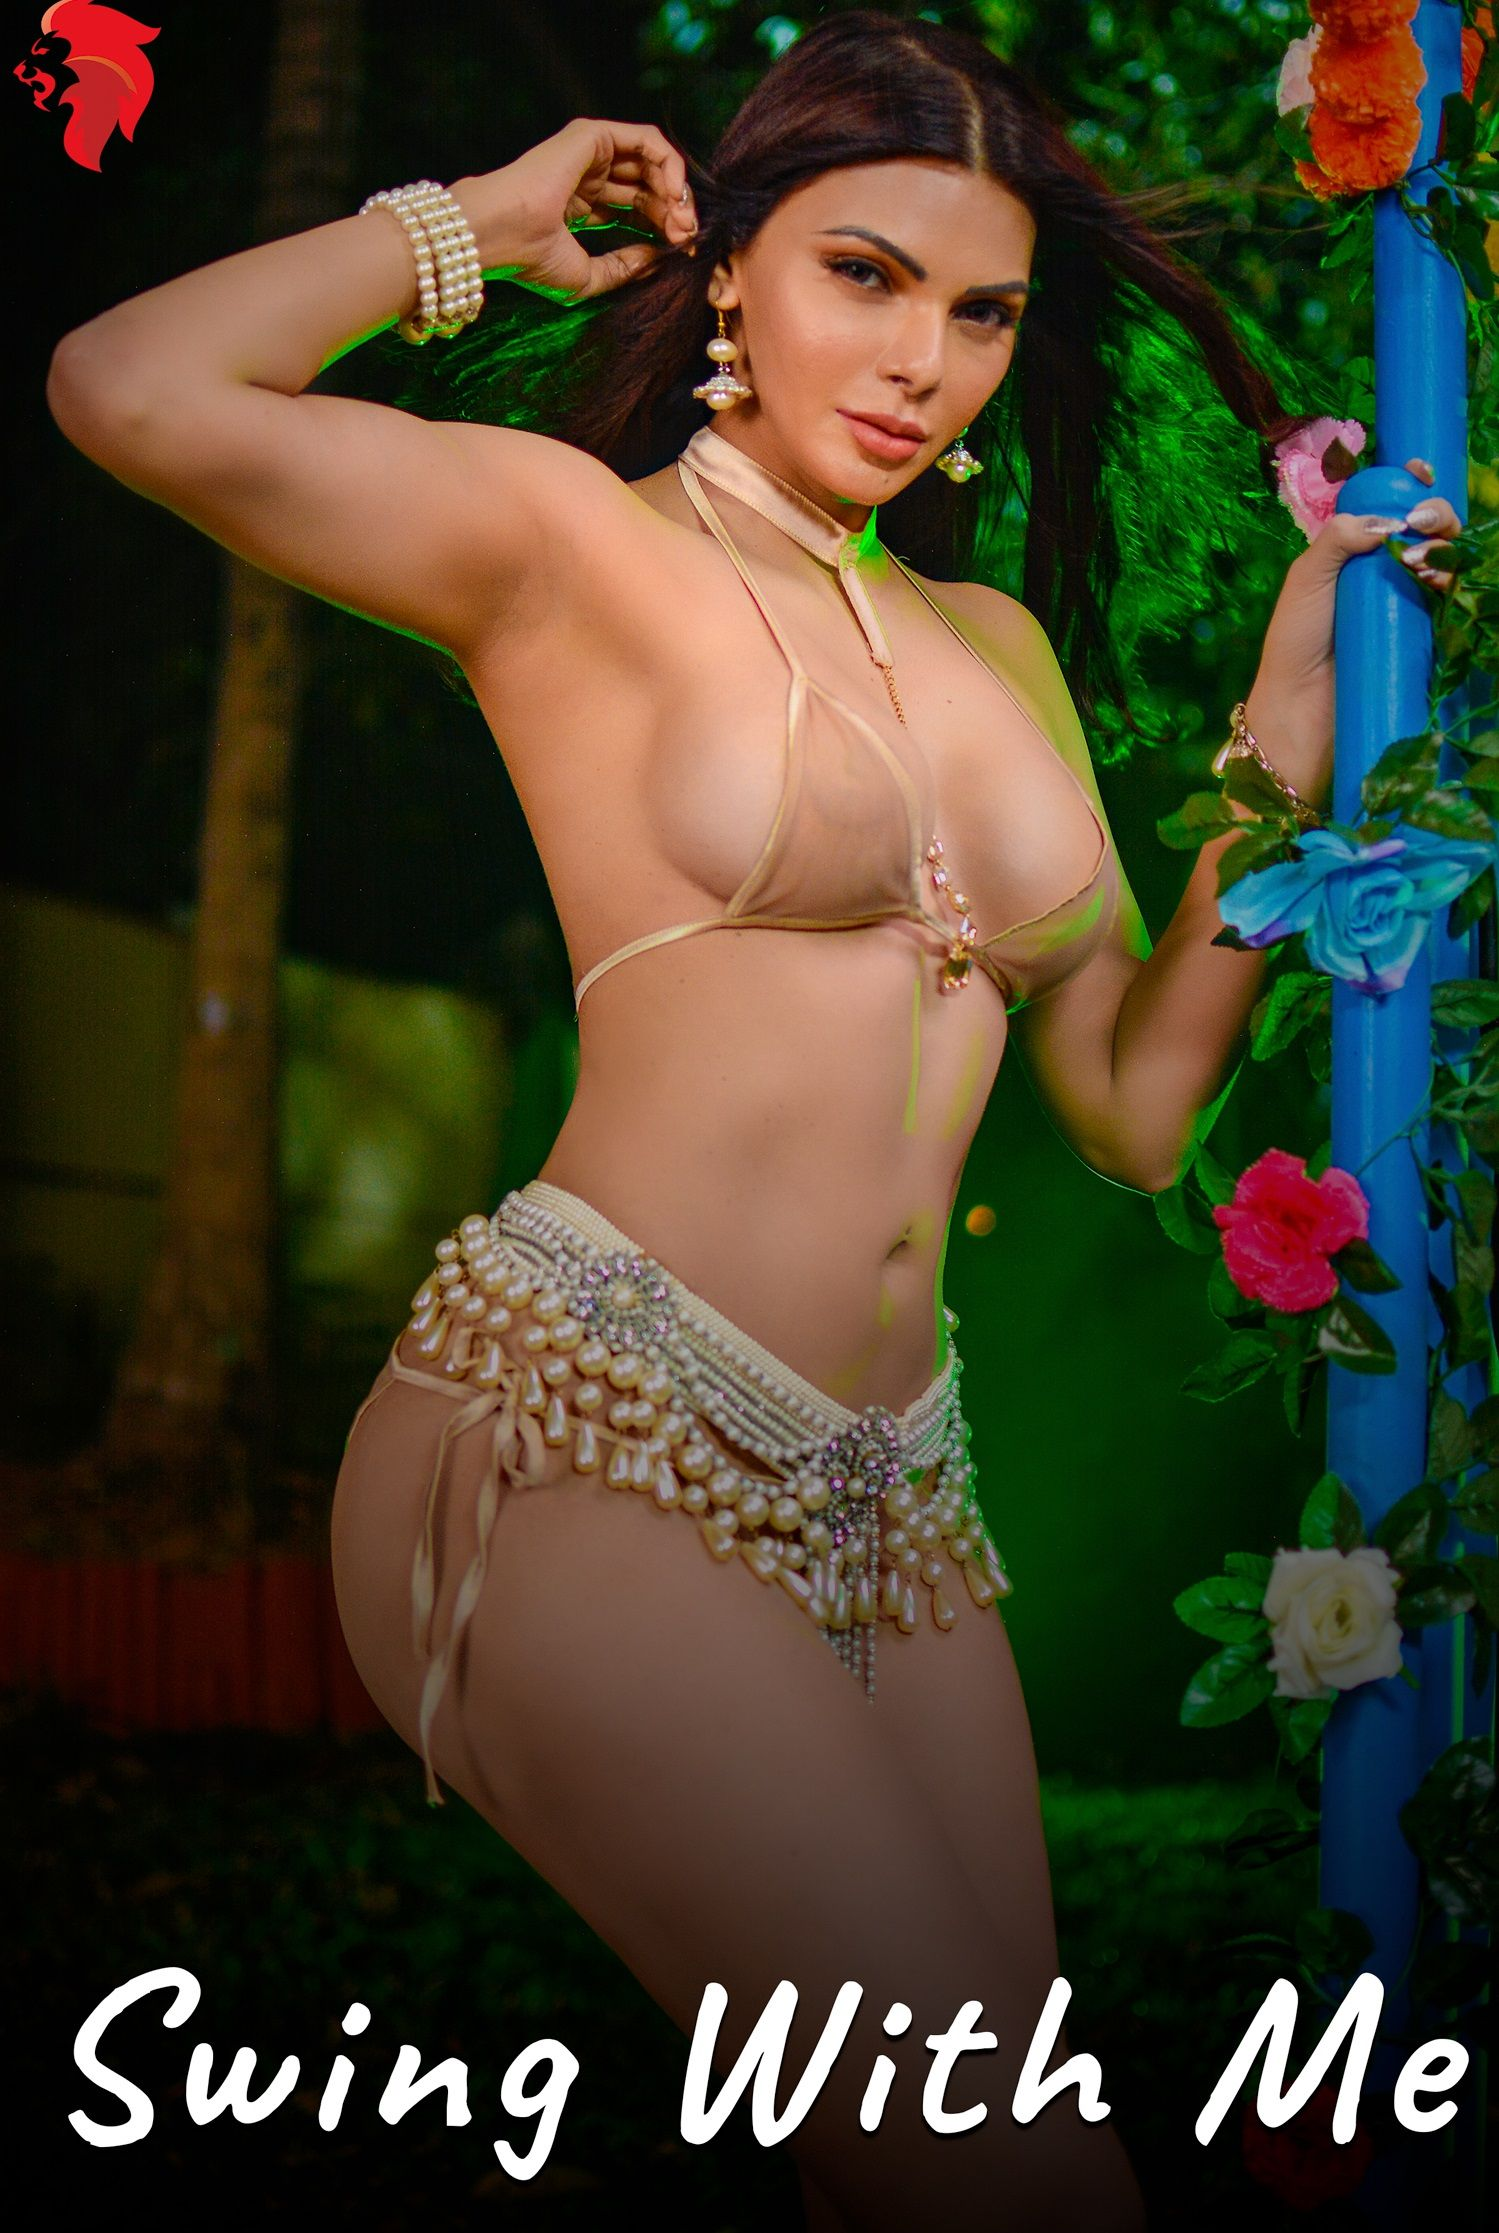 18+Swing With Me (2020) By Sherlyn Chopra Hindi Video 720p UNRATED HDRip 110MB Watch Online